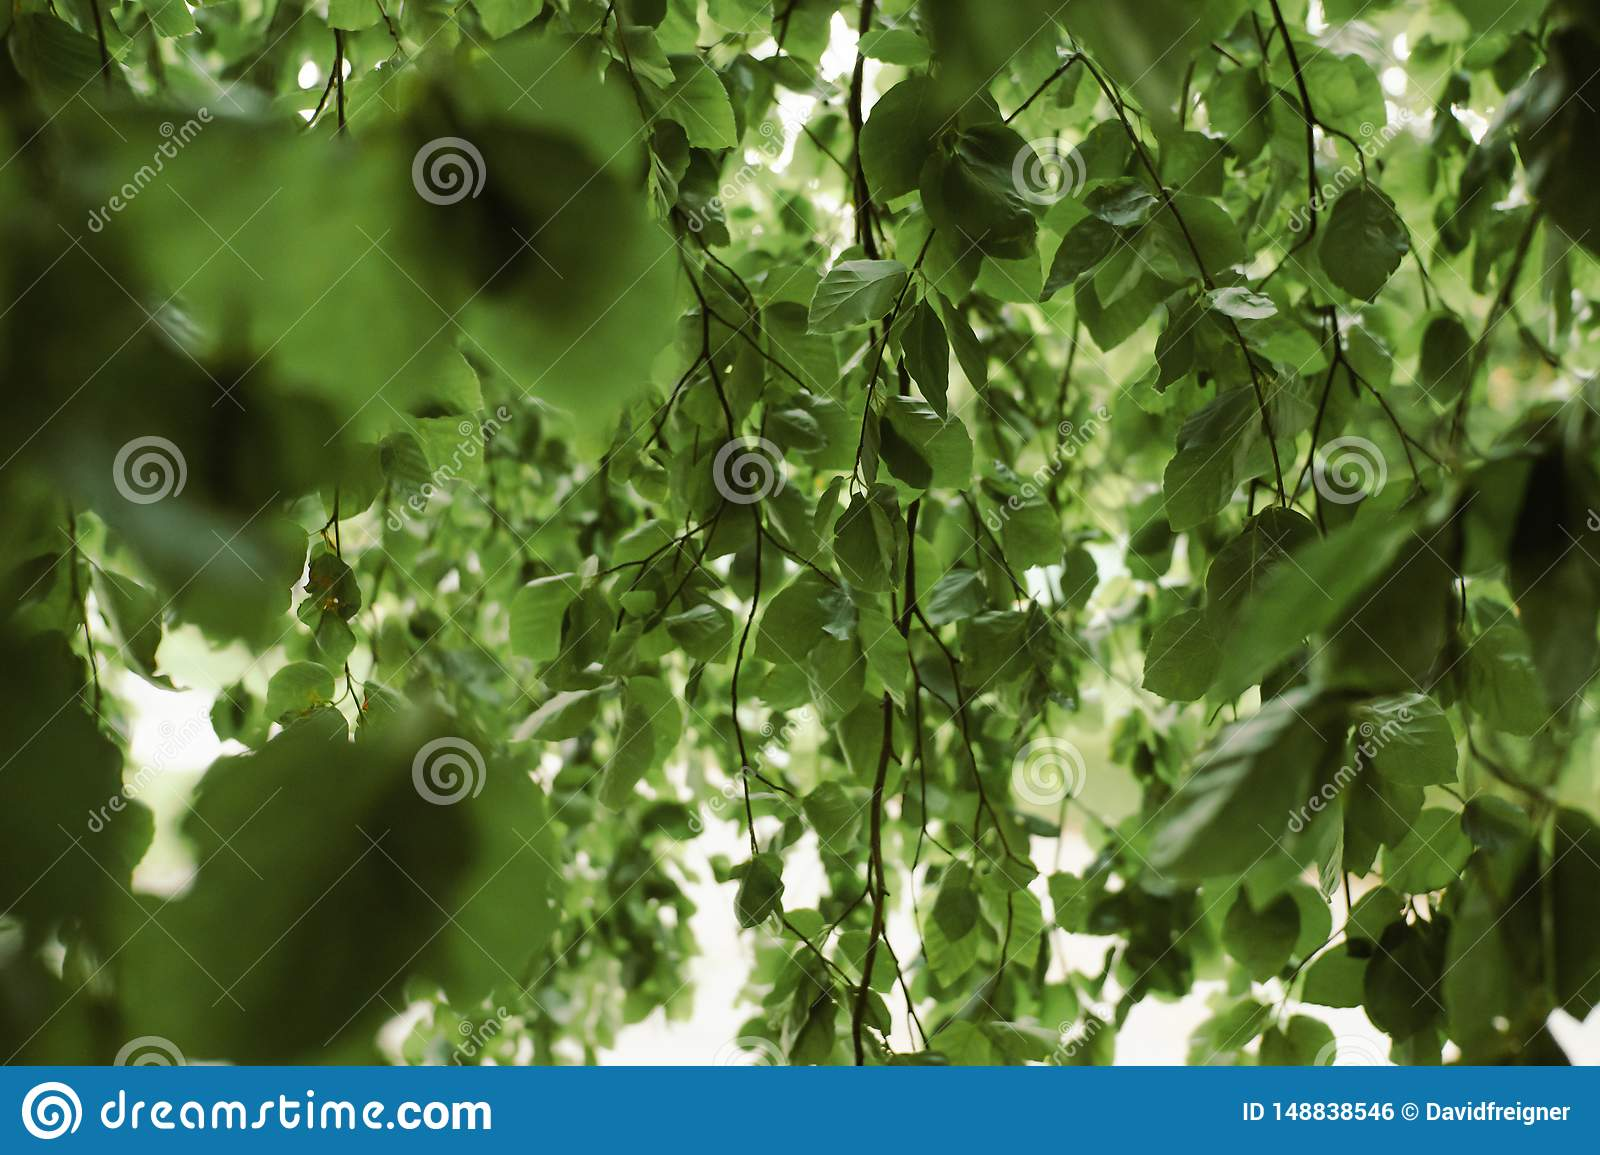 Willow tree leaves background. Environment, gardening and wildlife concept